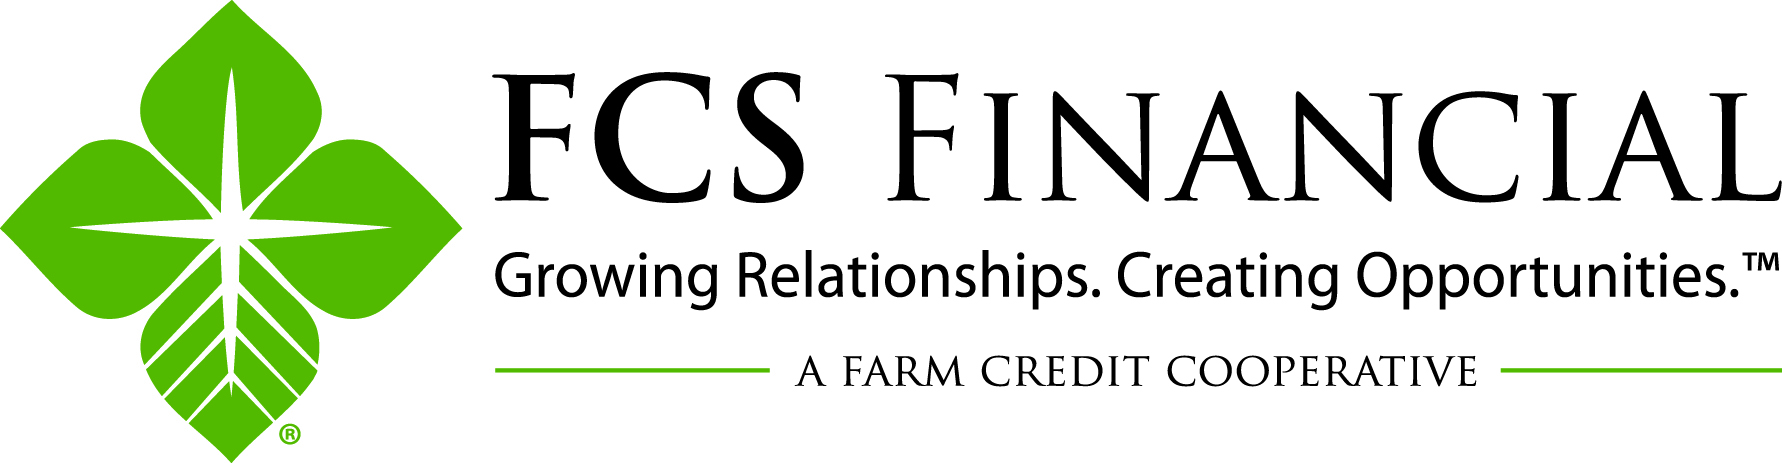 FCS Financial celebrates 100-year anniversary with $1 million Foundation for rural Missouri